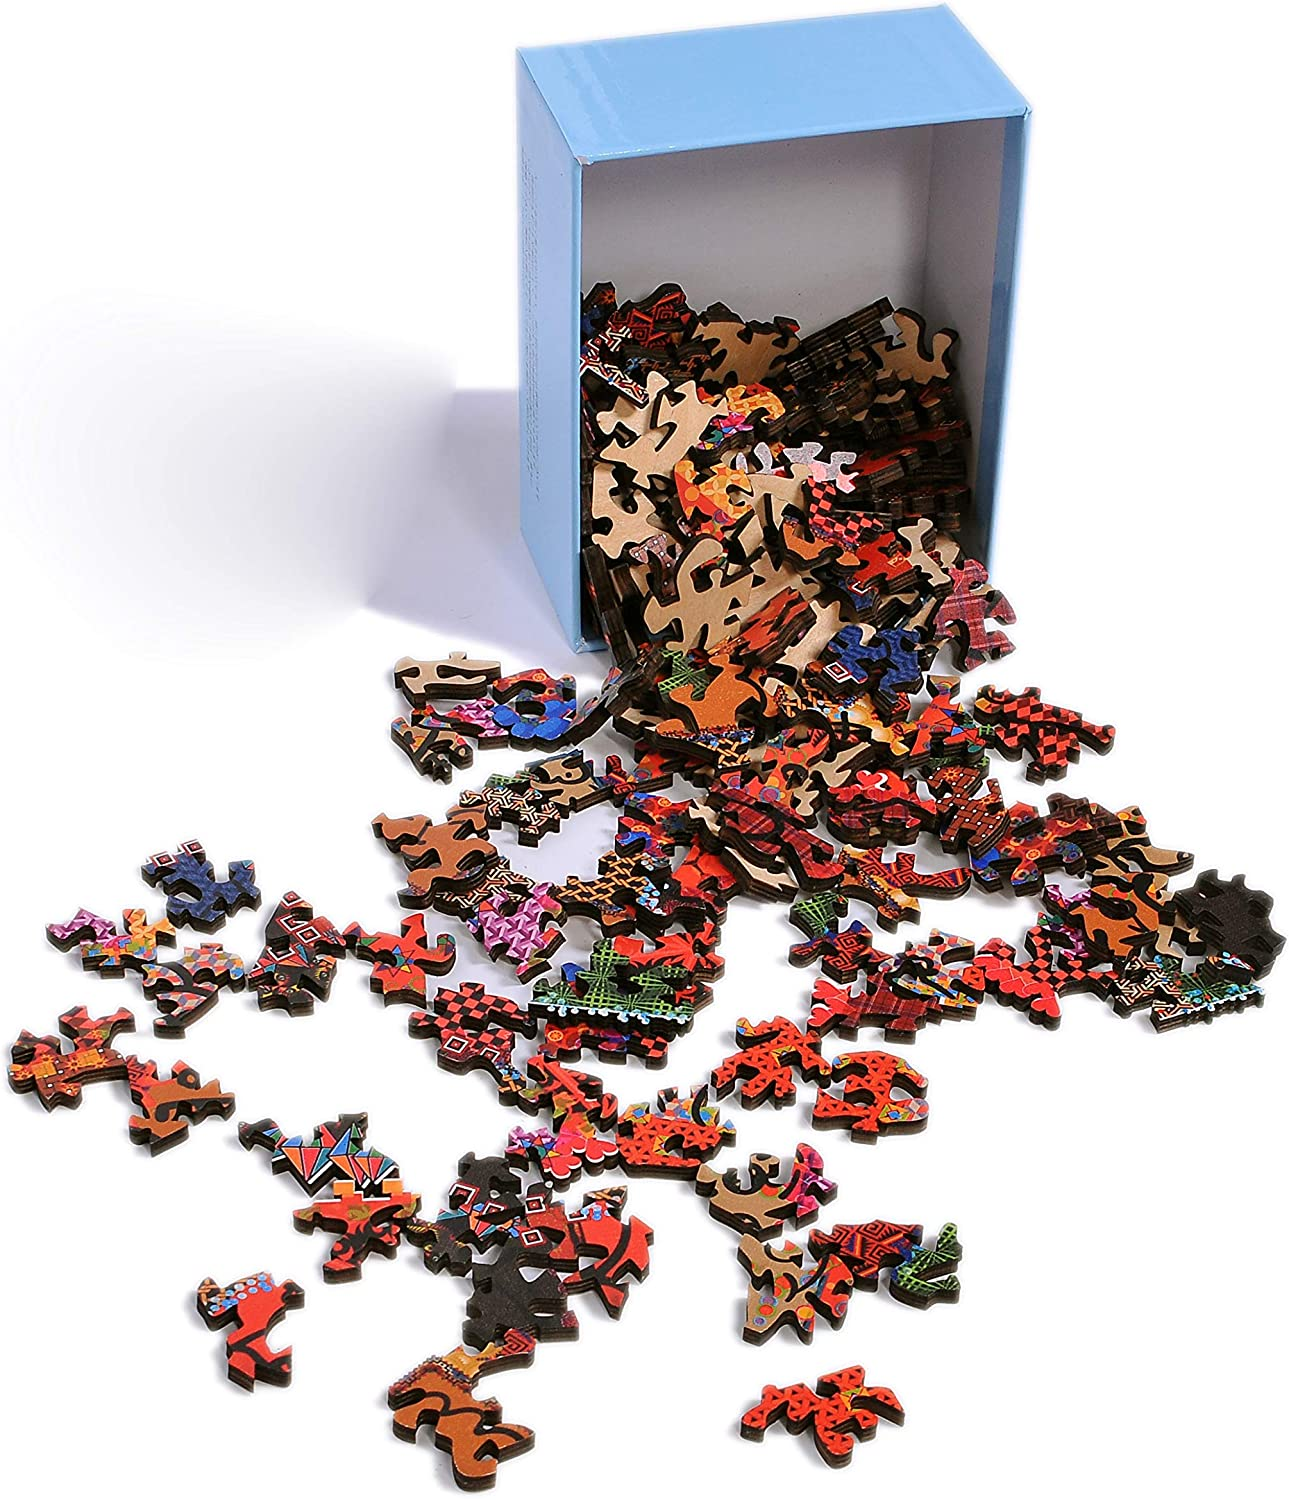 Hartmaze Wooden Jigsaw Puzzles-Brilliant Cells and Chequers 167 Truly Unique Pieces Small Square Shape-Best Choice for Adults and 8 Years Age up Kids.